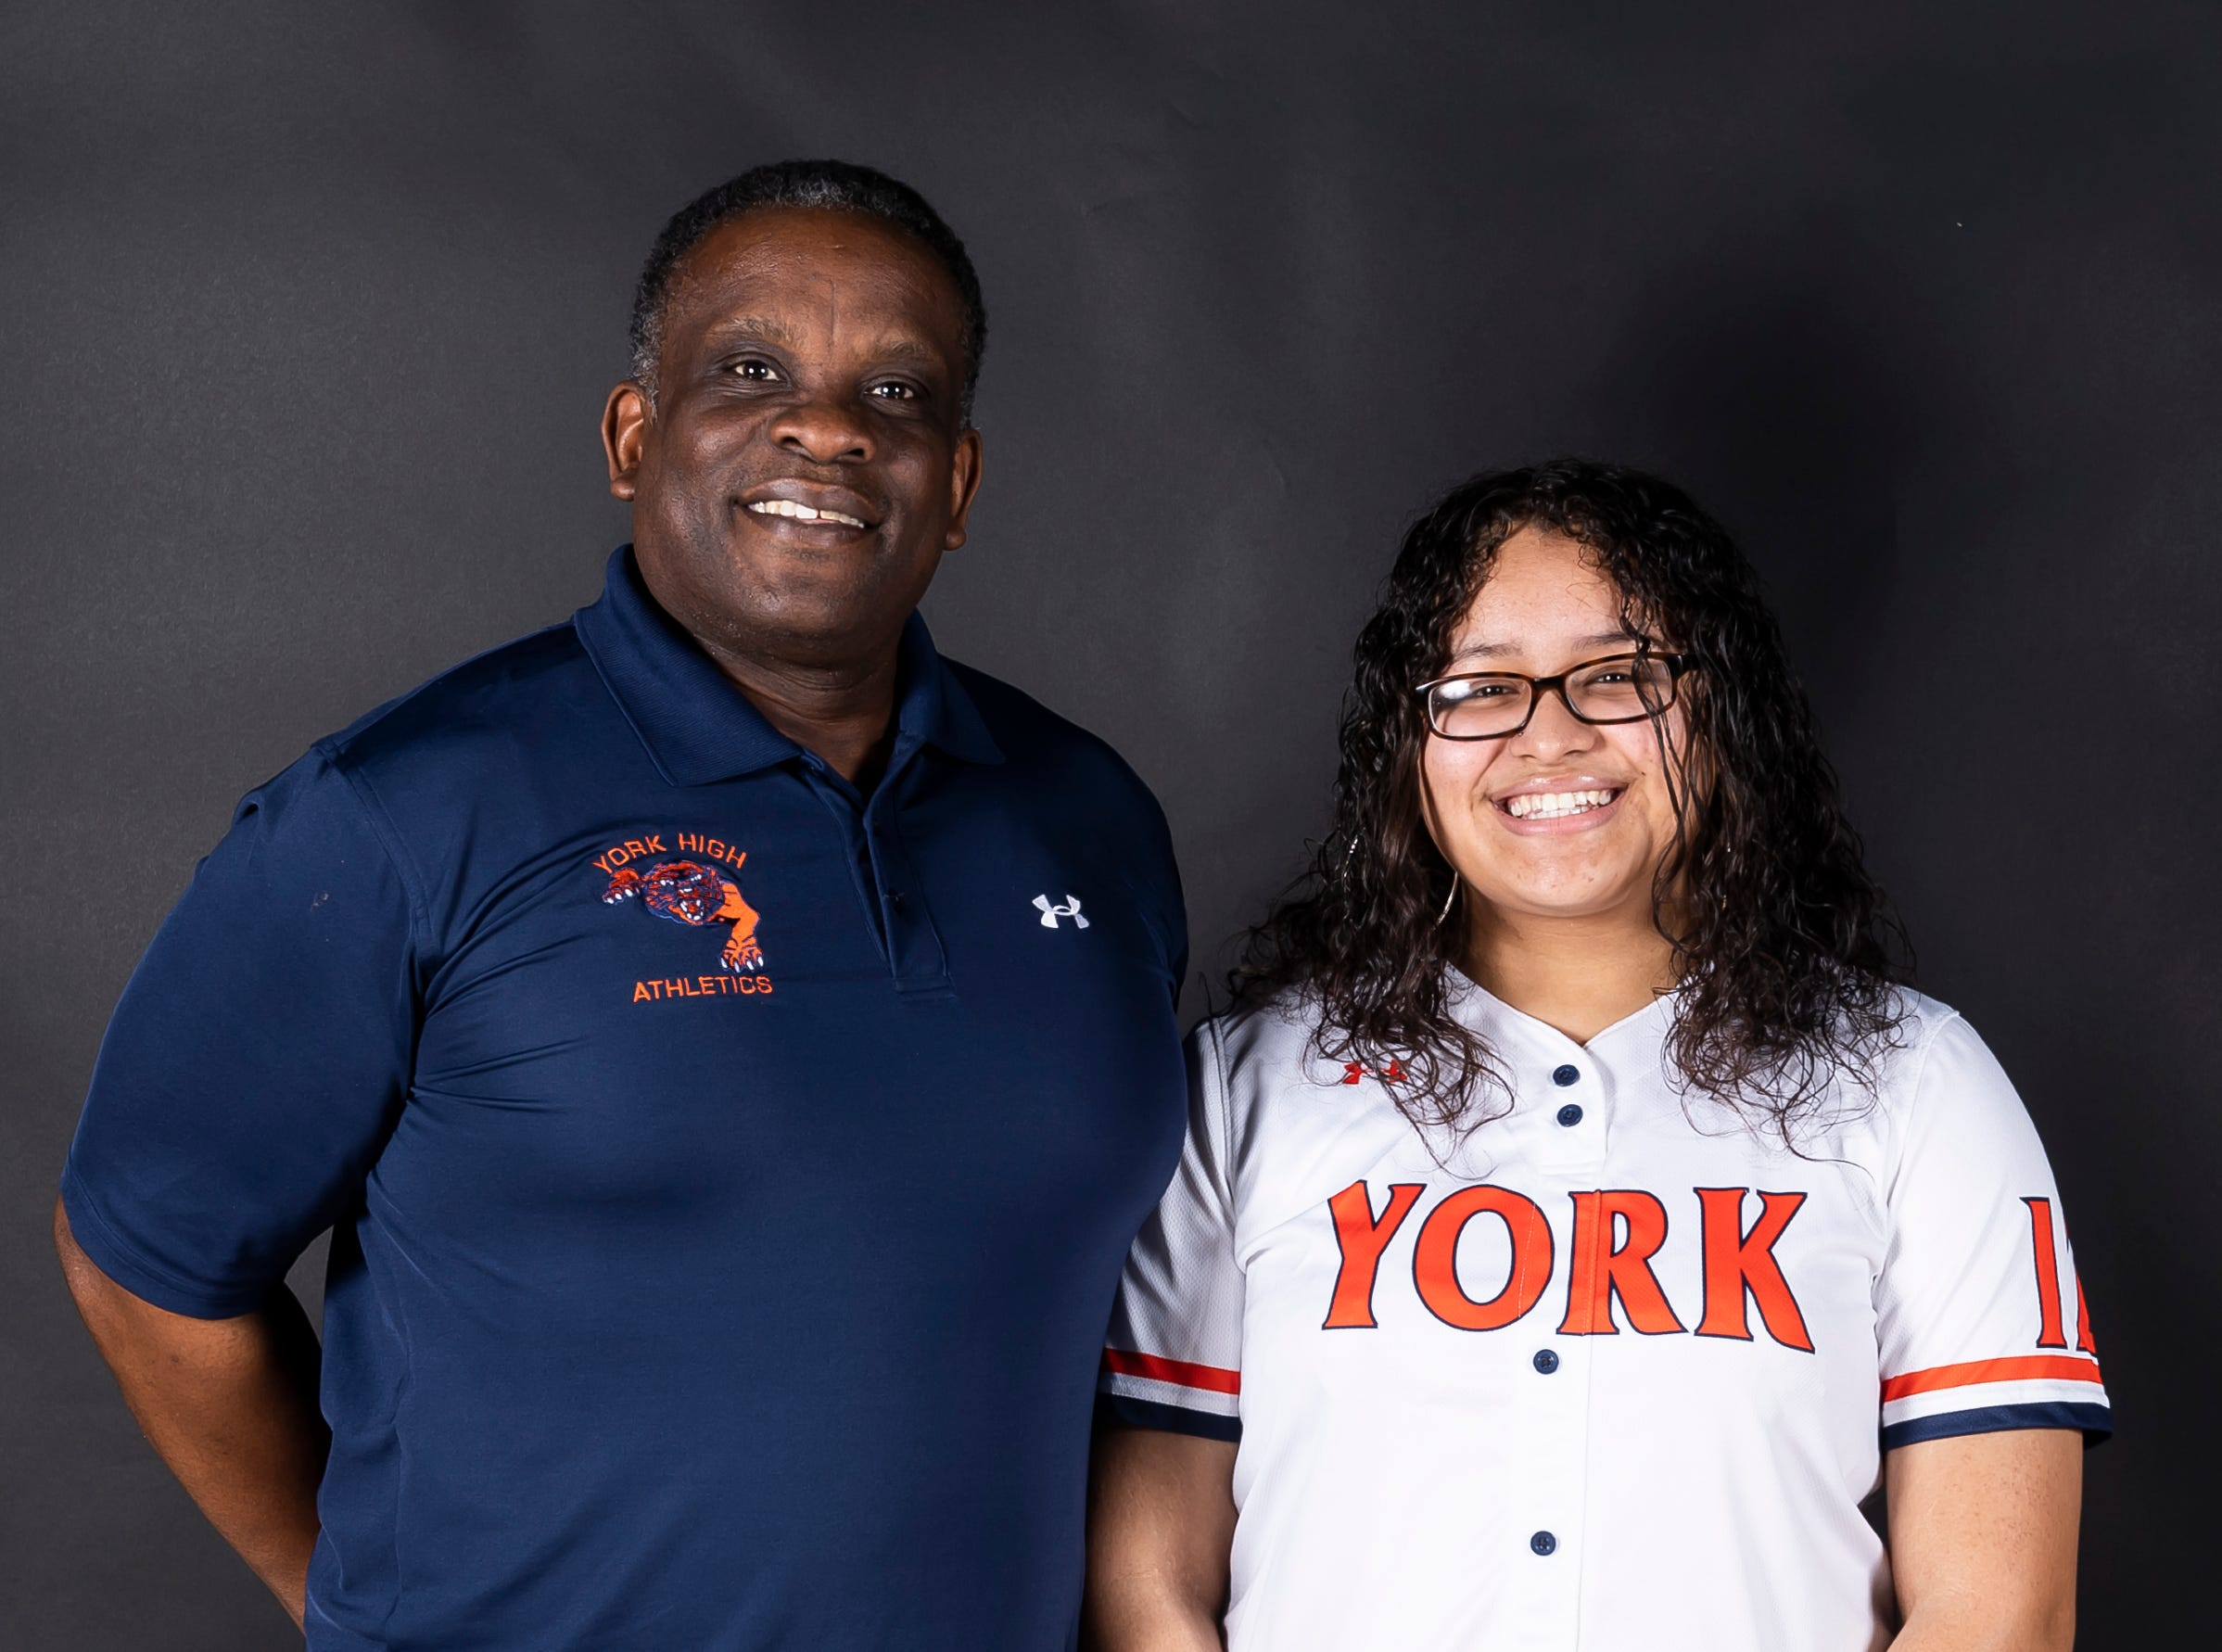 York High softball Eric Cox and player Jesska Moreno pose in the GameTimePA photo booth during spring sports media day in York Sunday, March 10, 2019.